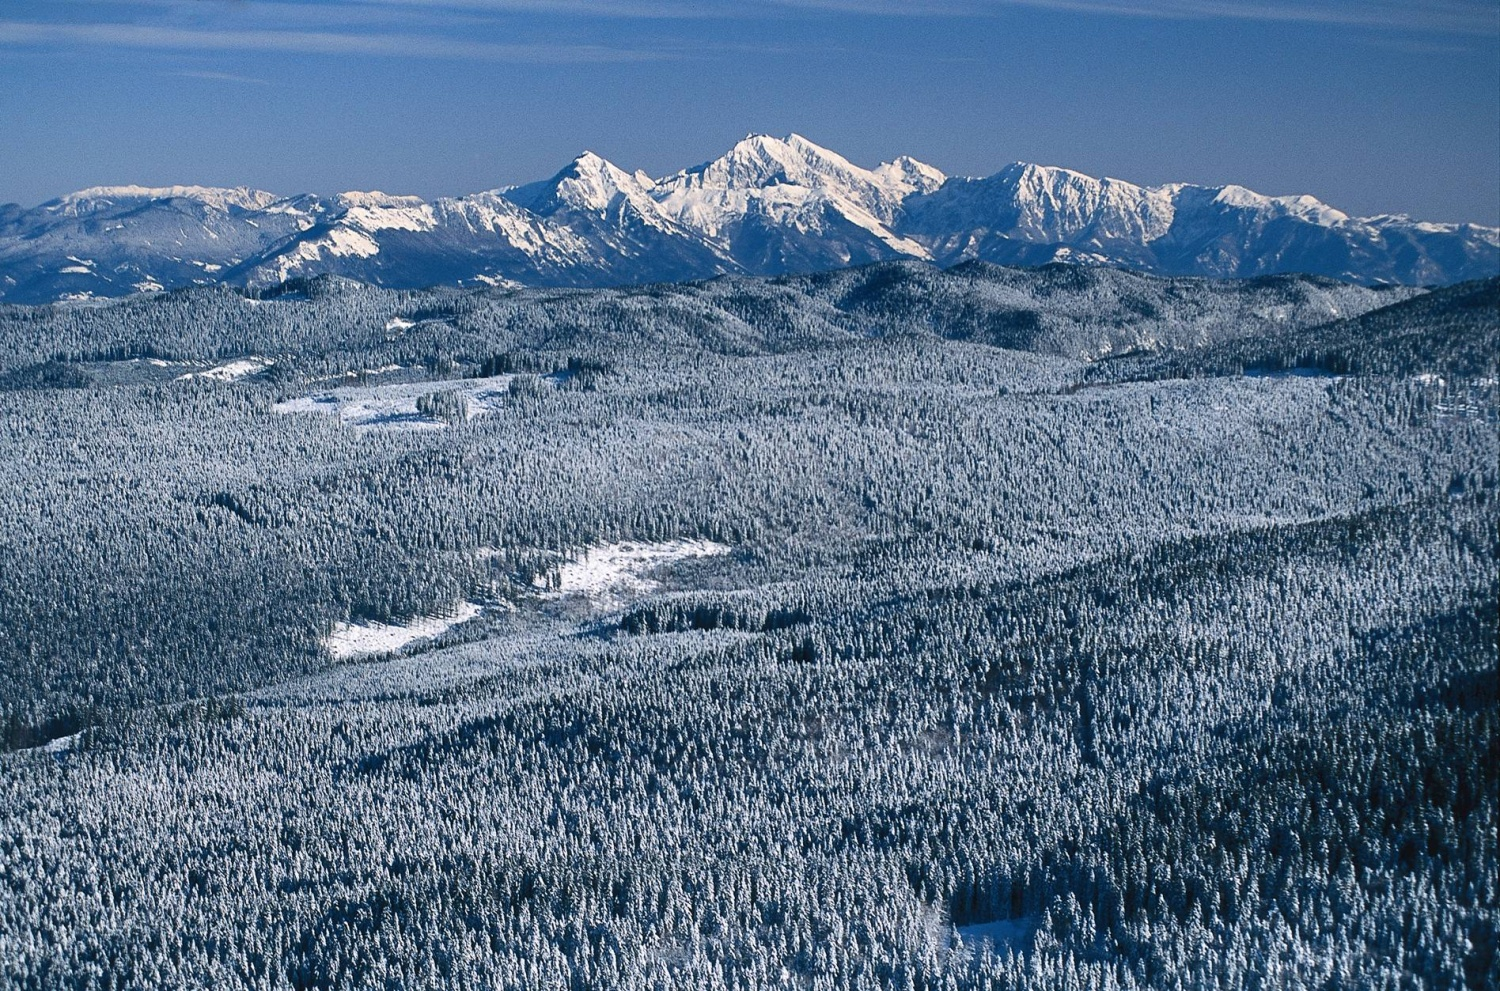 During winter the Pokljuka plateau turns into a very popular cross country skiing destination